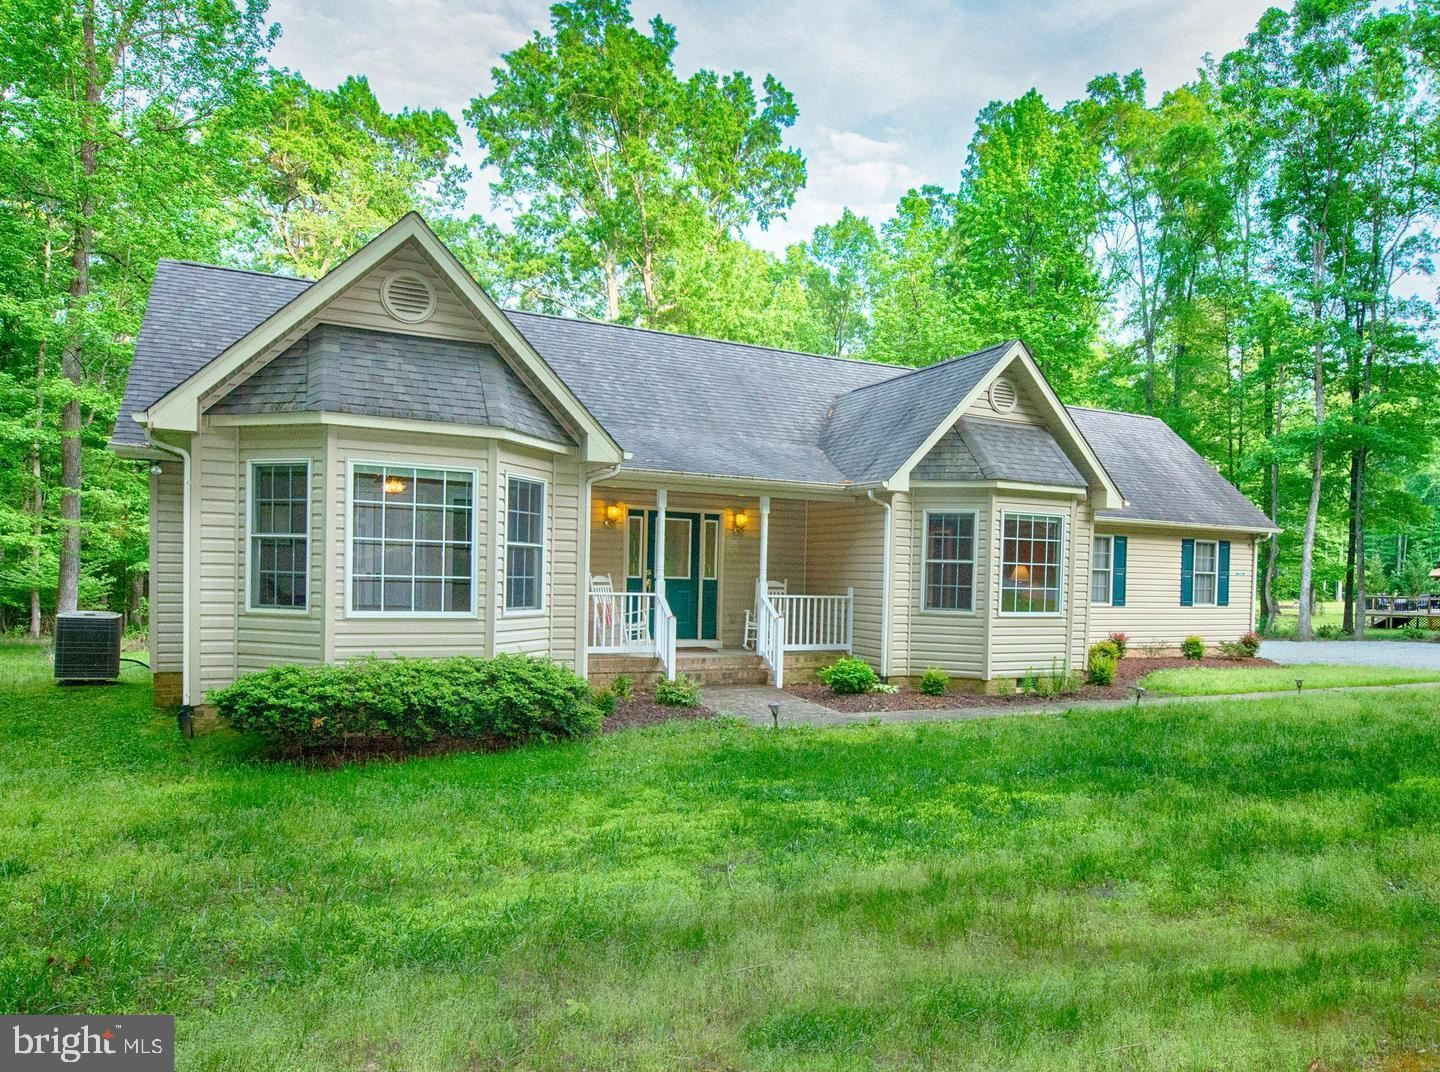 9 LOCH ERIE WAY, Bumpass, VA 23024 - #: VALA120684